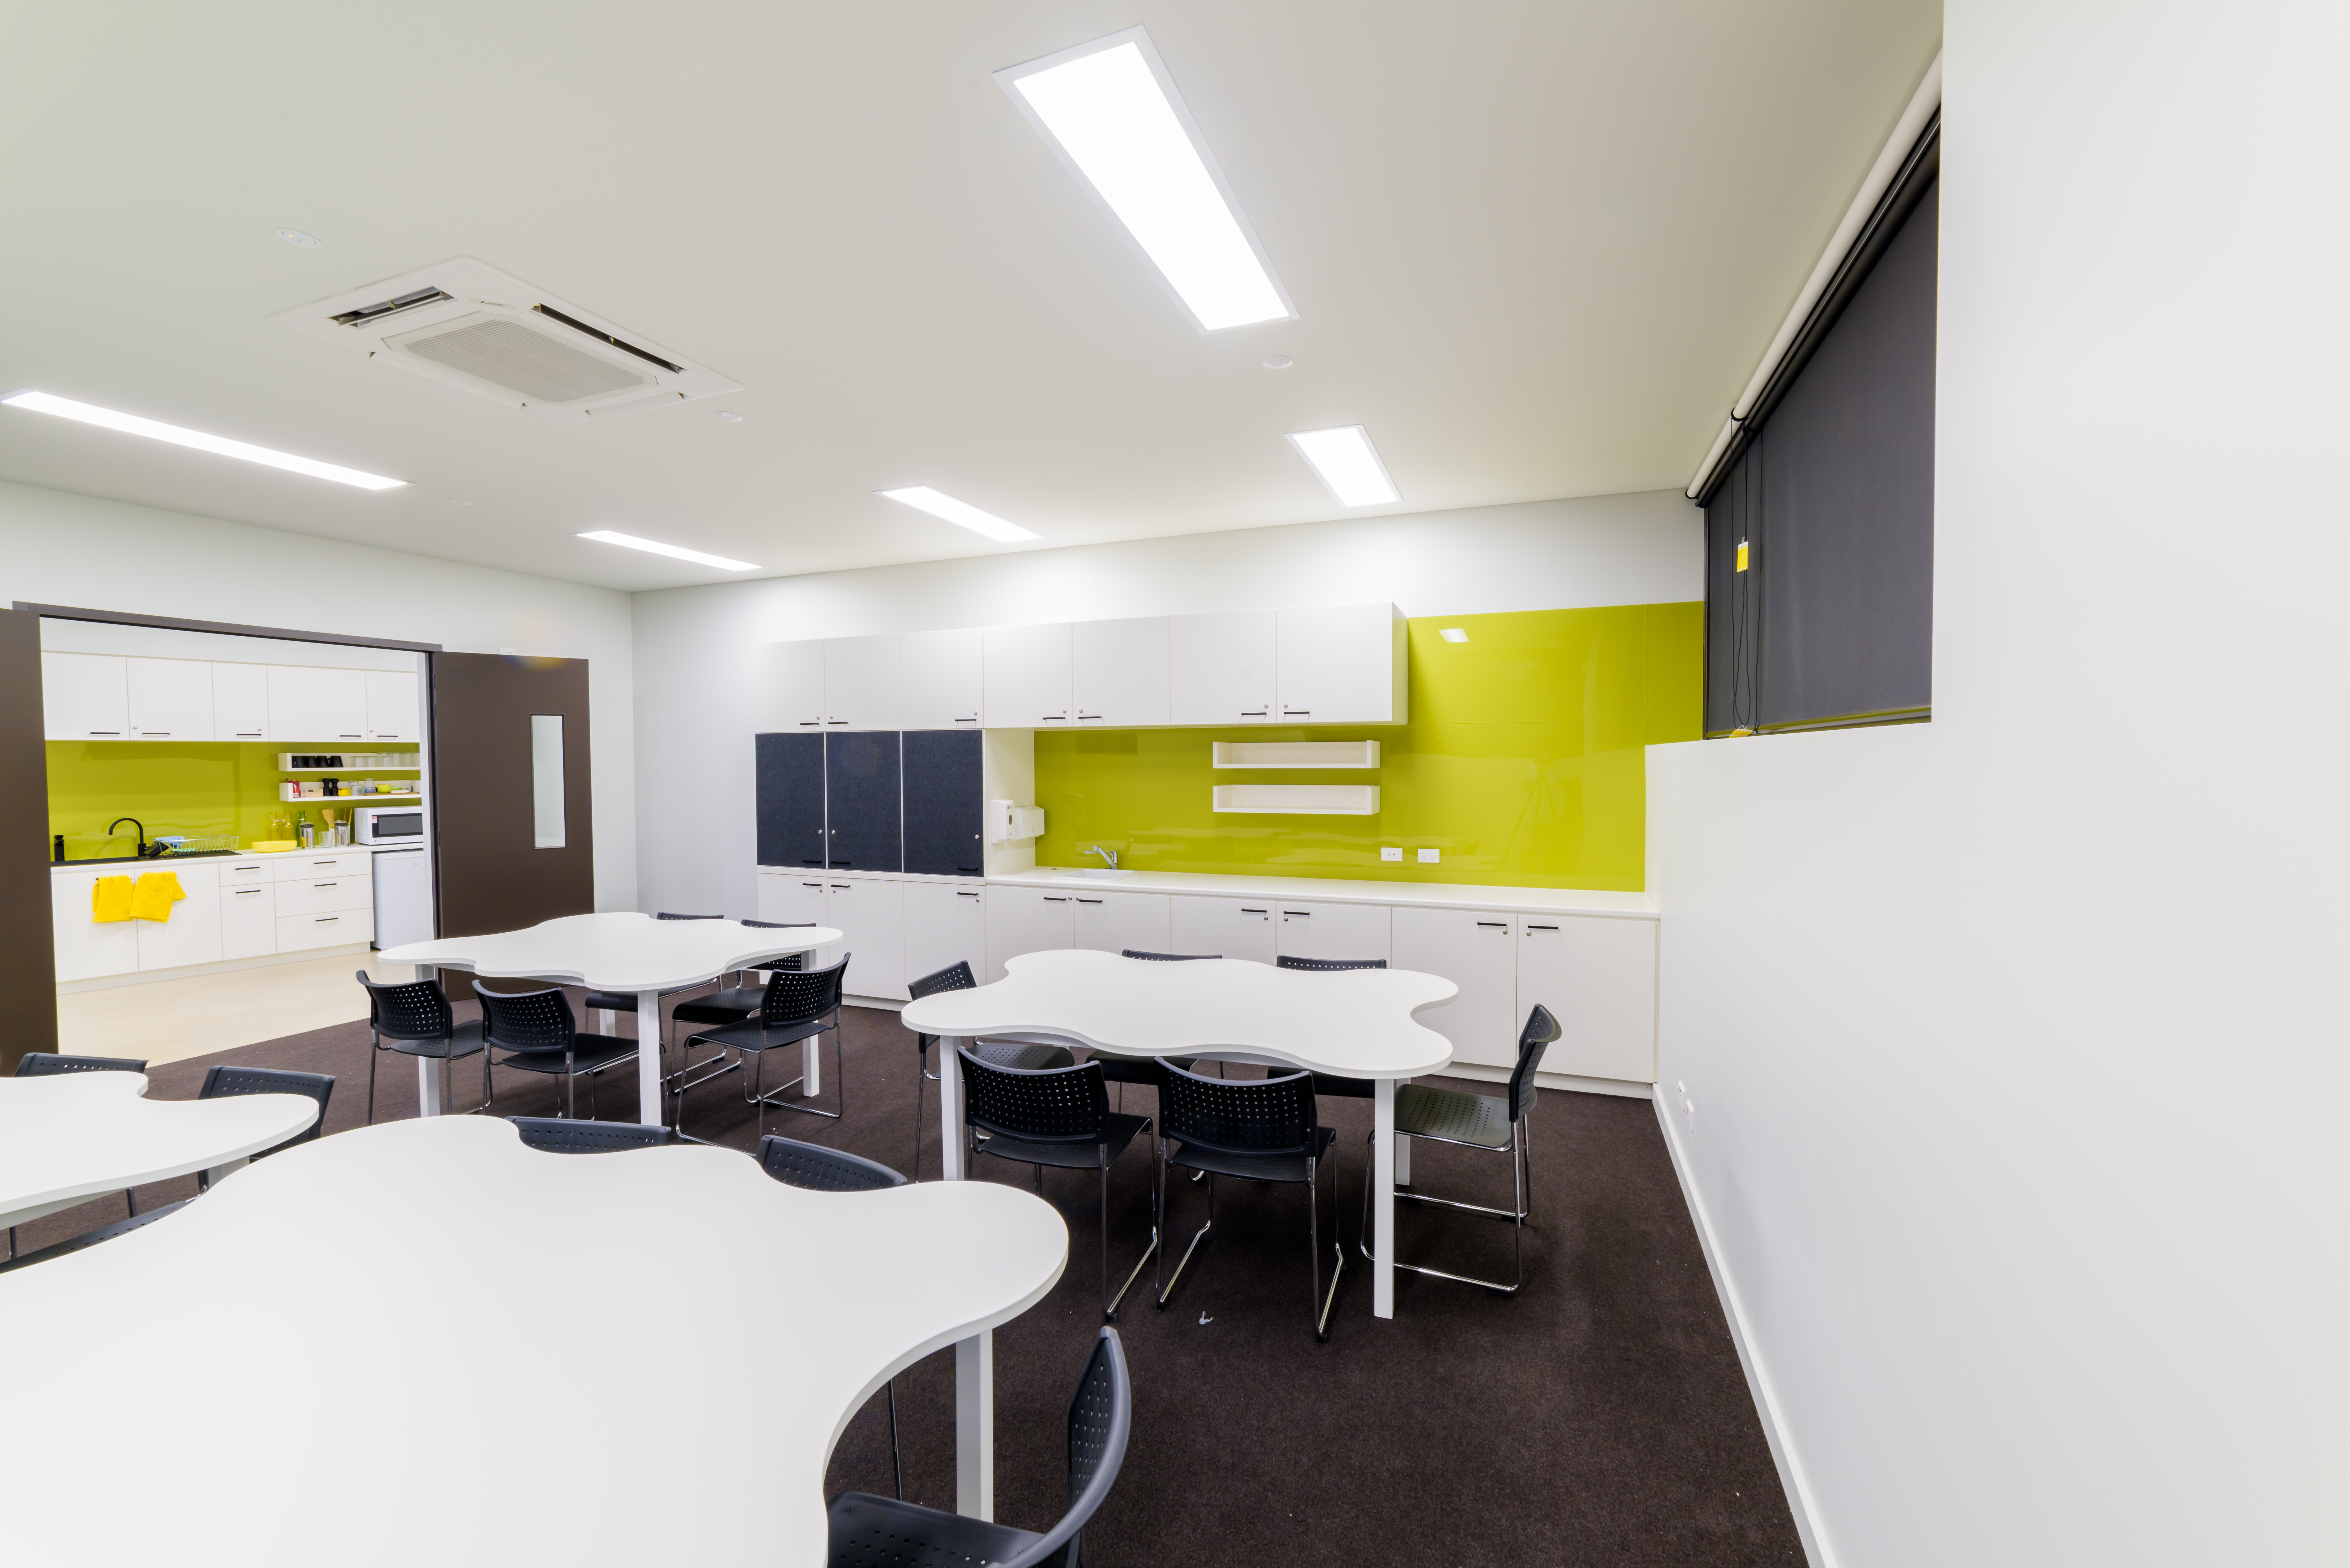 Photo of Activity Room two with tables and chairs and corridor kitchenette in the background